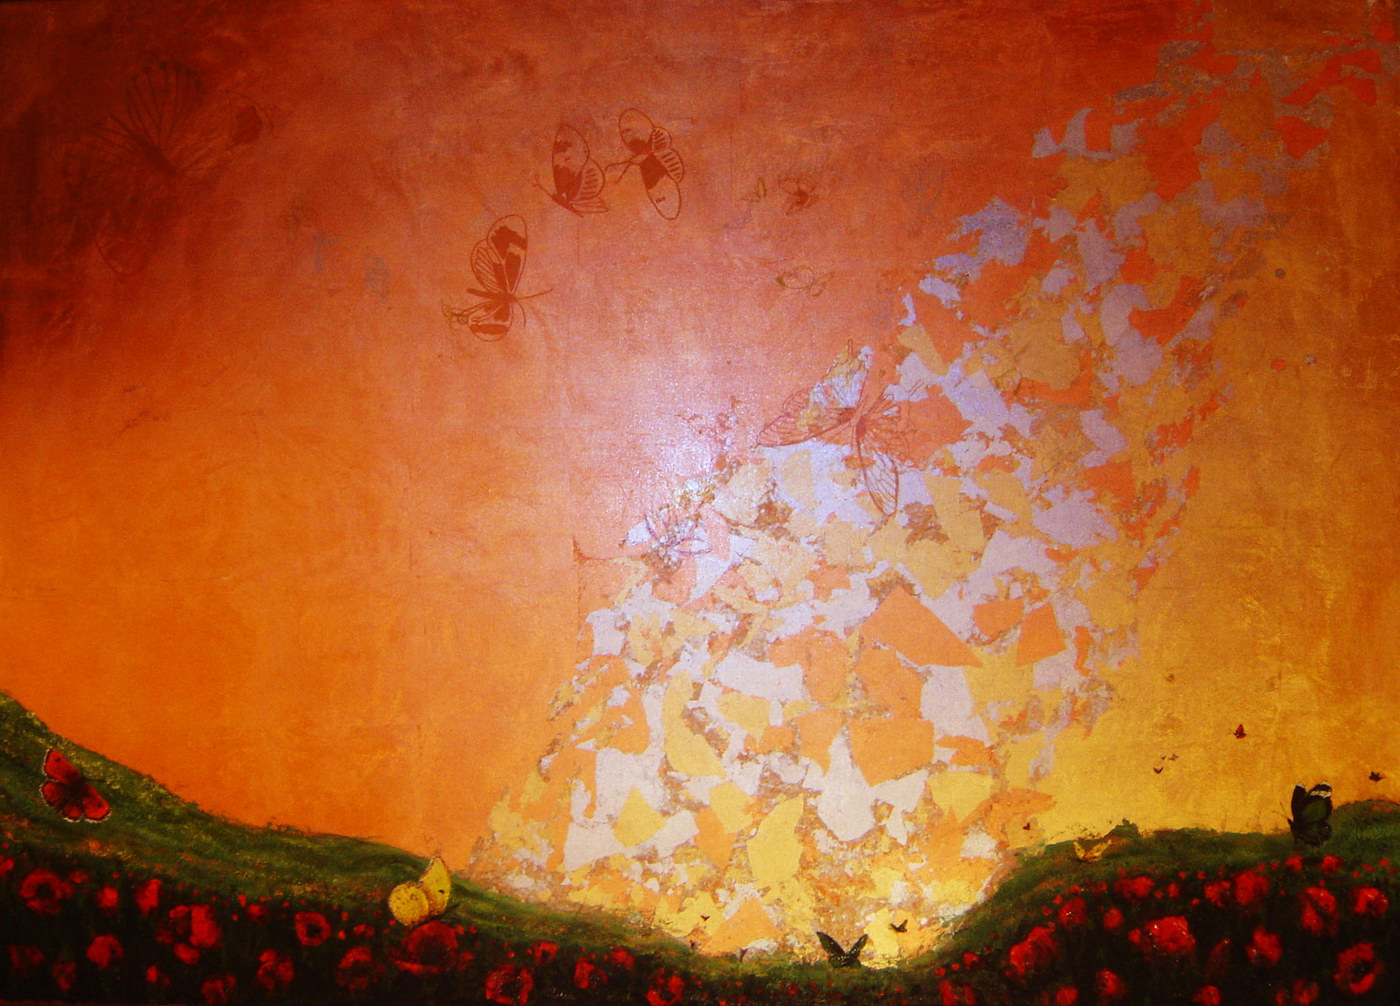 Sunrise (140x100cm) mixed media on canvas